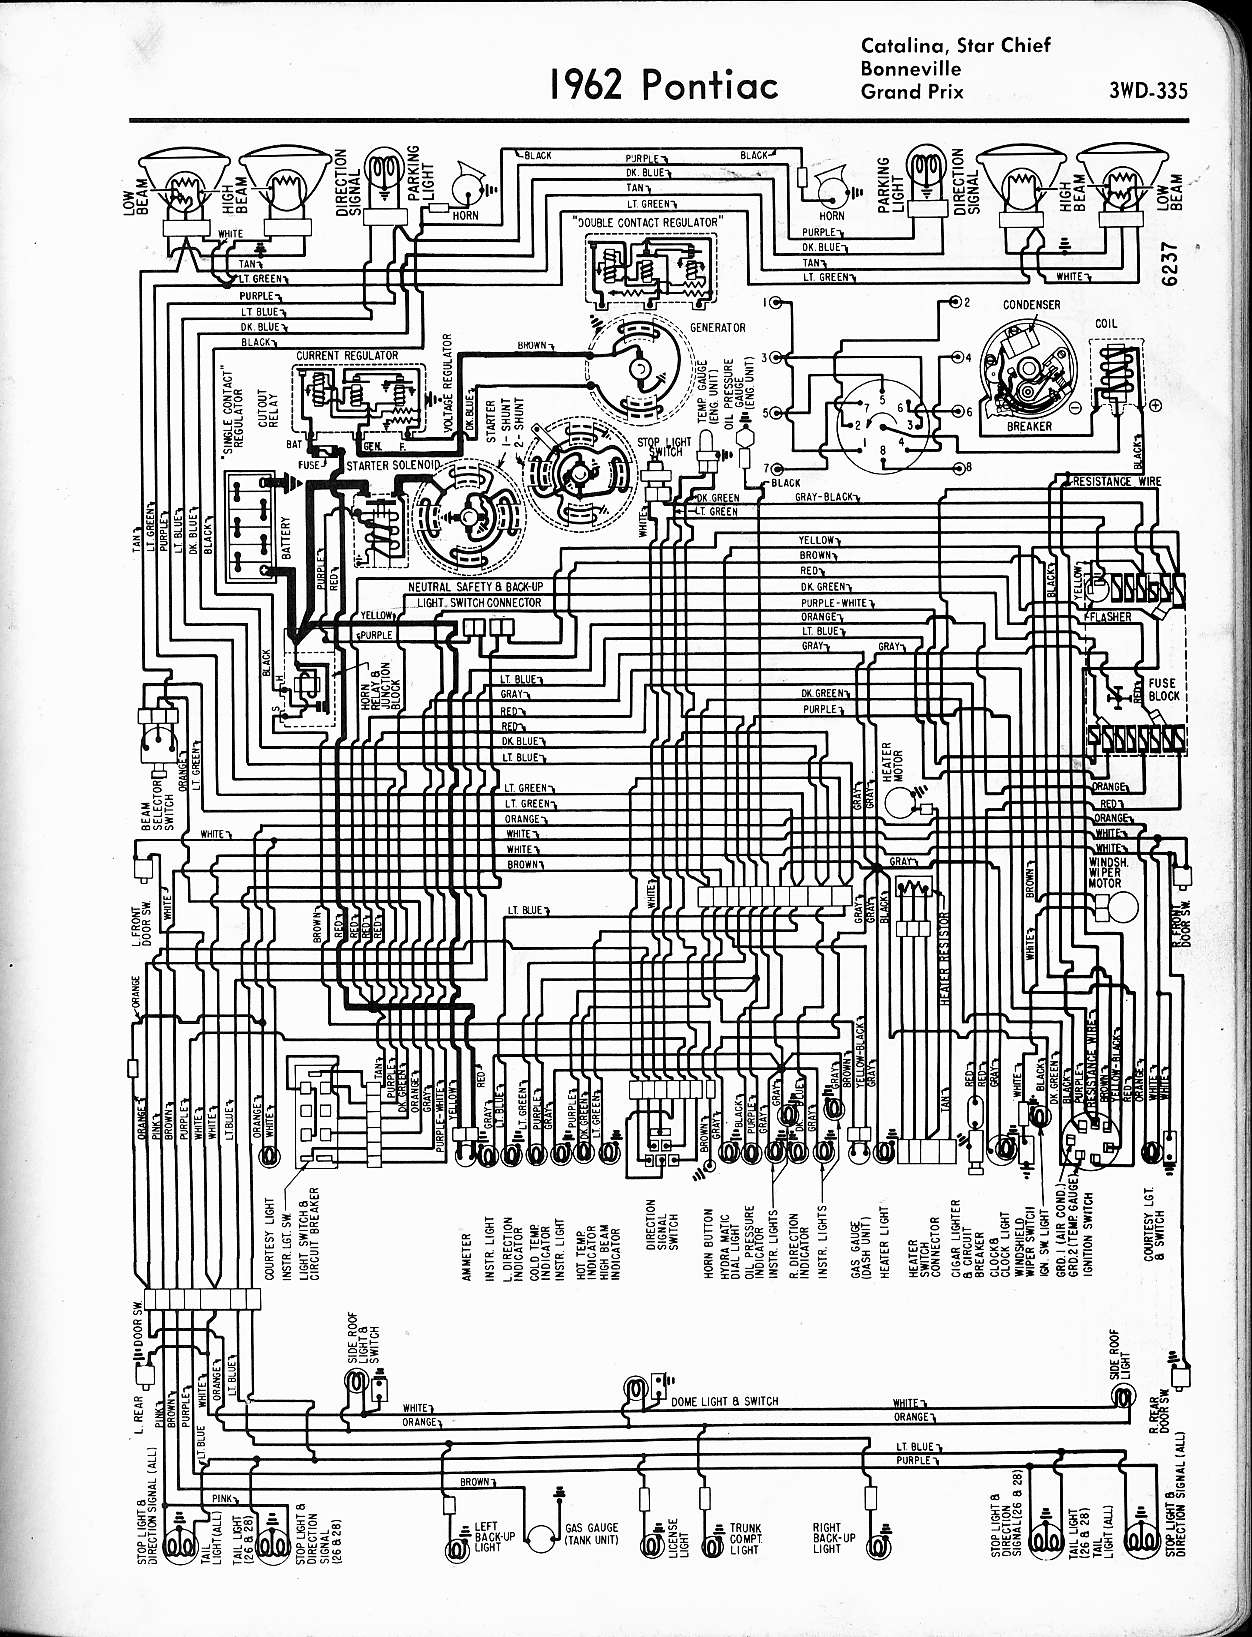 1956 Pontiac Wiring | Wiring Diagram - 2006 Pontiac Grand Prix Radio Wiring Diagram